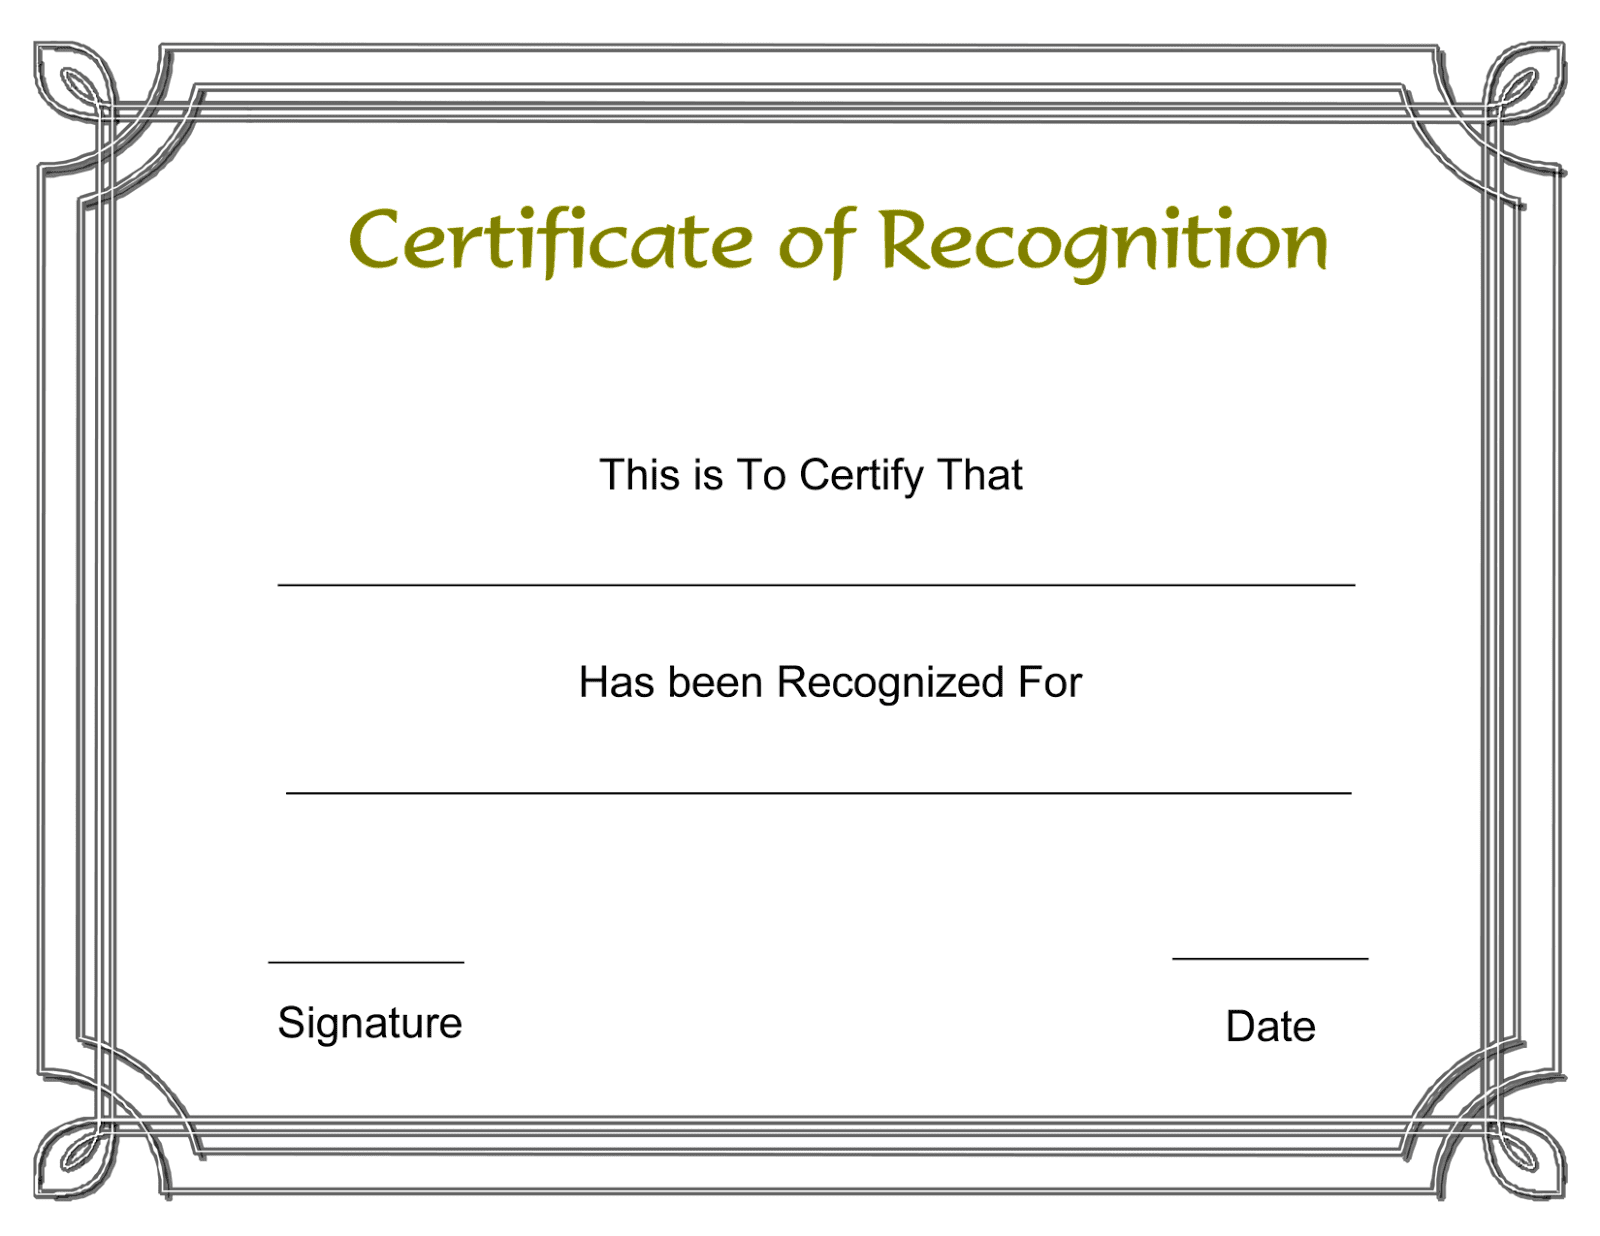 sample wording certificates appreciation, sample of appreciation wording, sample certificate of appreciation, peer award wording examples, corporate trophies, corporate awards, certificate of recognition sample wording, certificate of recognition, certificate of appreciation wording, certificate of appreciation word template, baudville products, awards for employees, appreciation awards